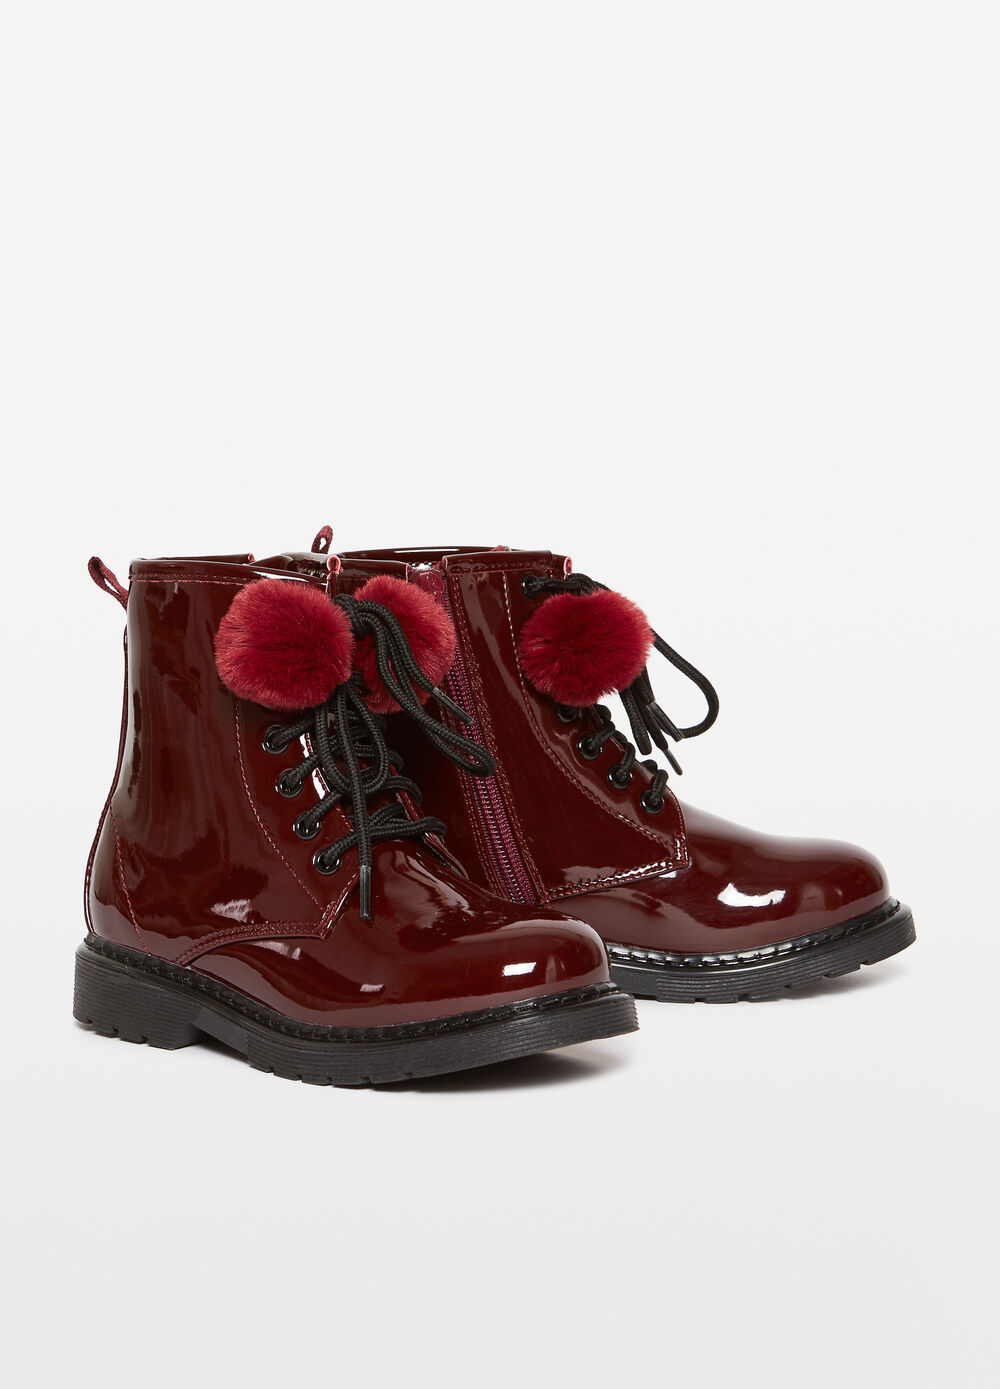 Shiny field boots with pompoms